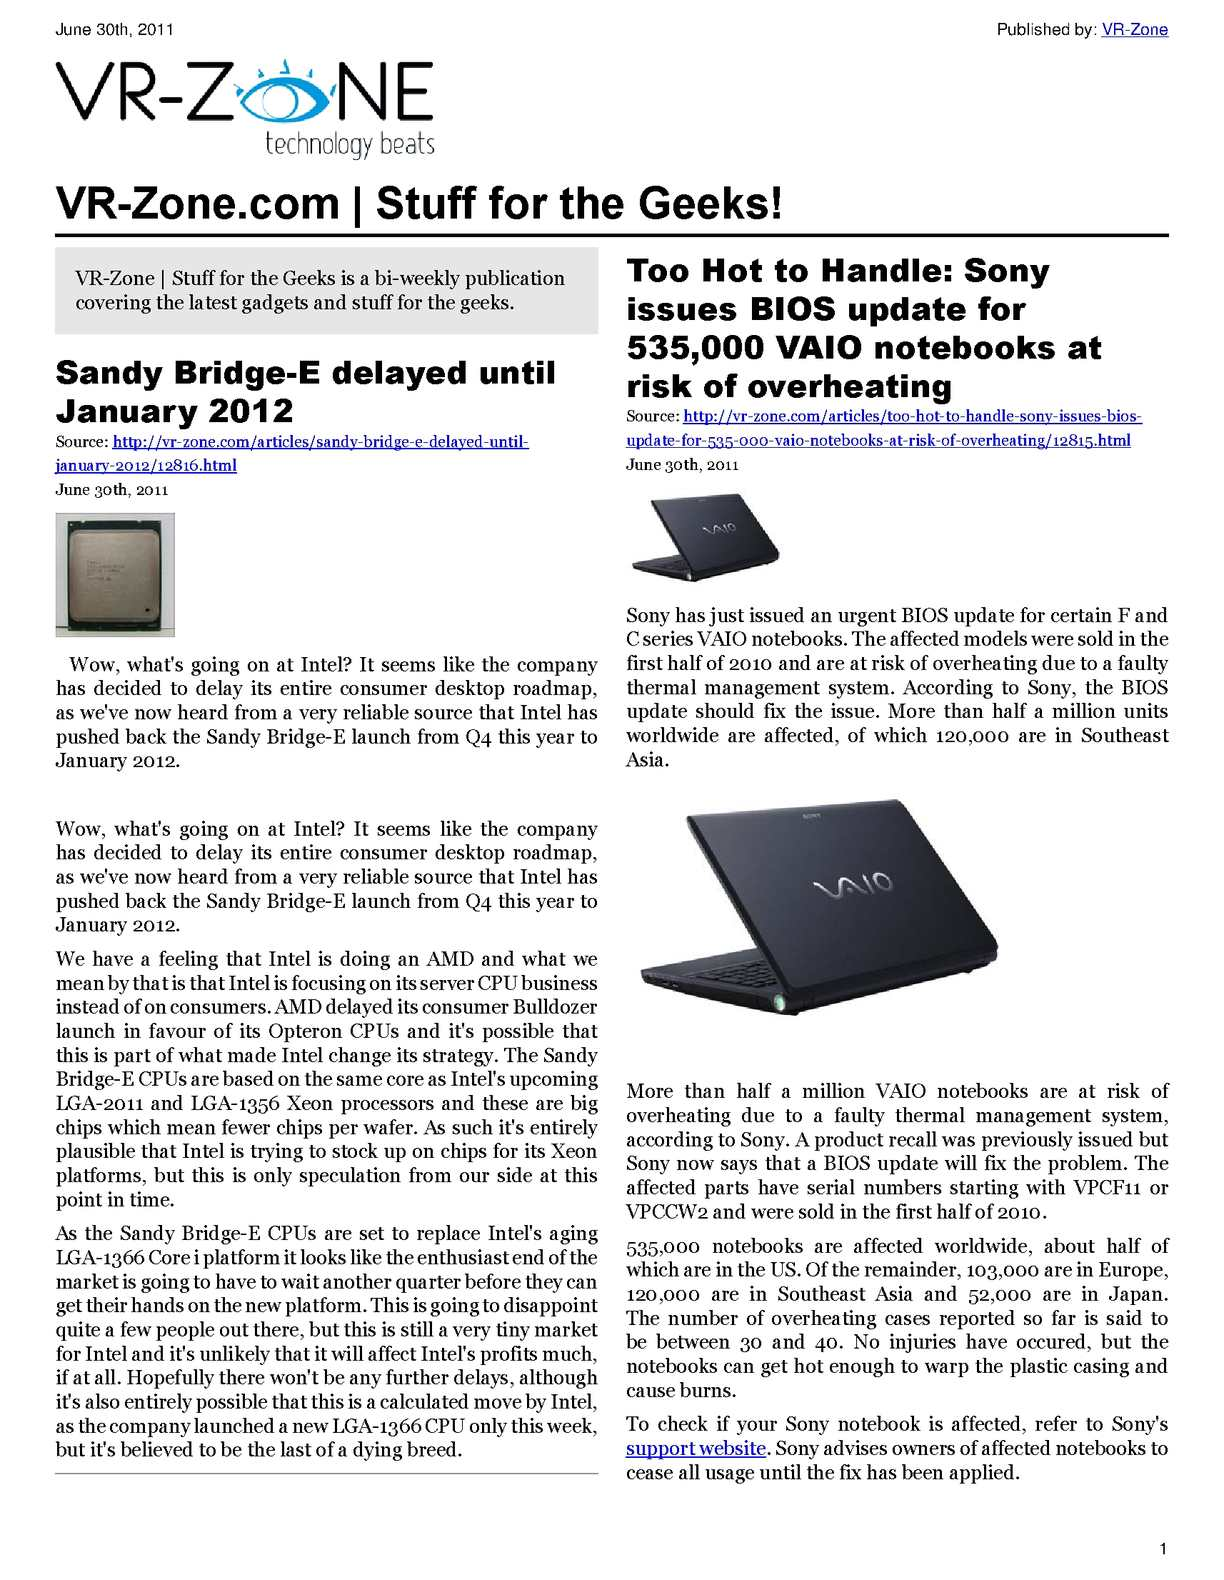 Calamo Vr Zone Tech News For The Geeks Jul 2011 Issue Sticker Logo Nvidia Geforce Gt Green Optimus Gtx